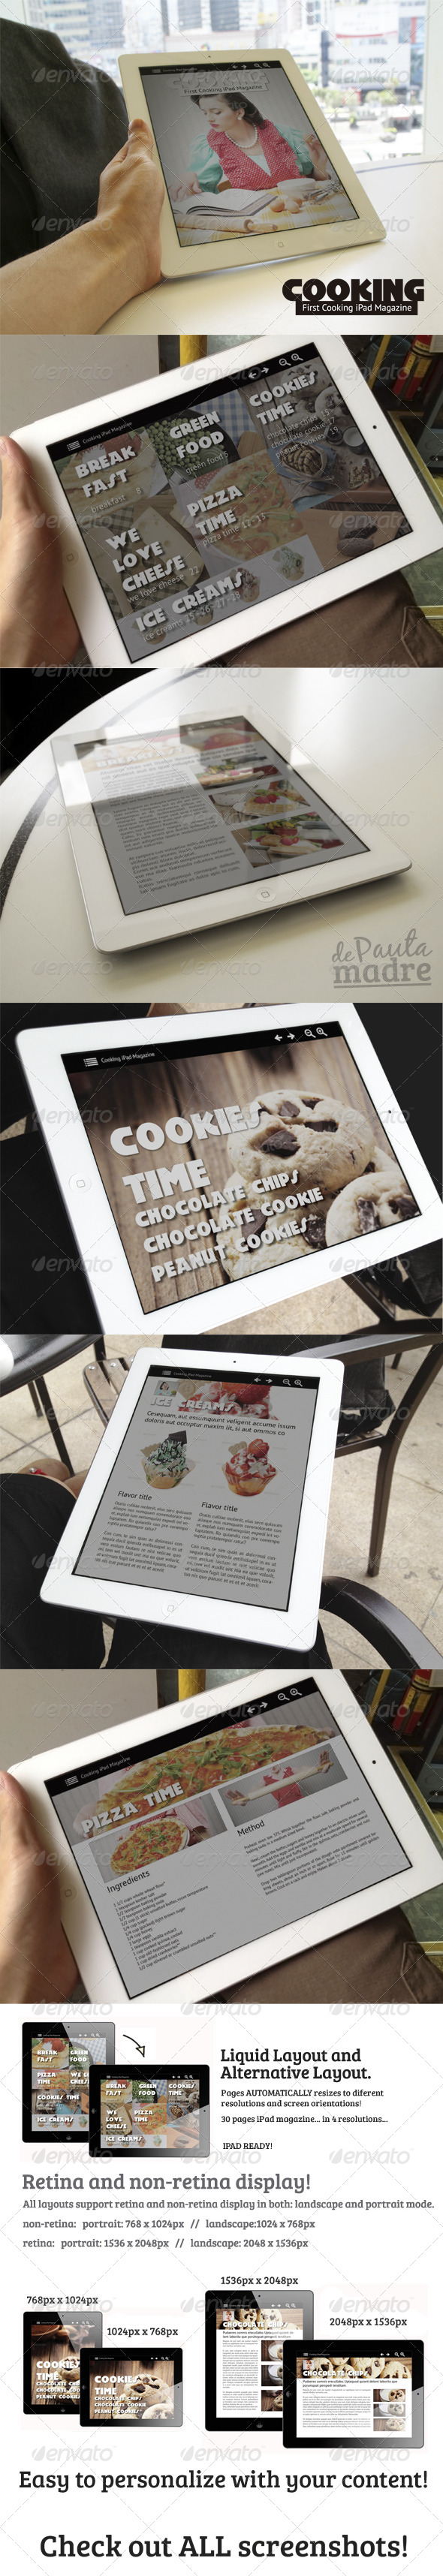 Cooking iPad Magazine in 4 resolutions - Digital Magazines ePublishing